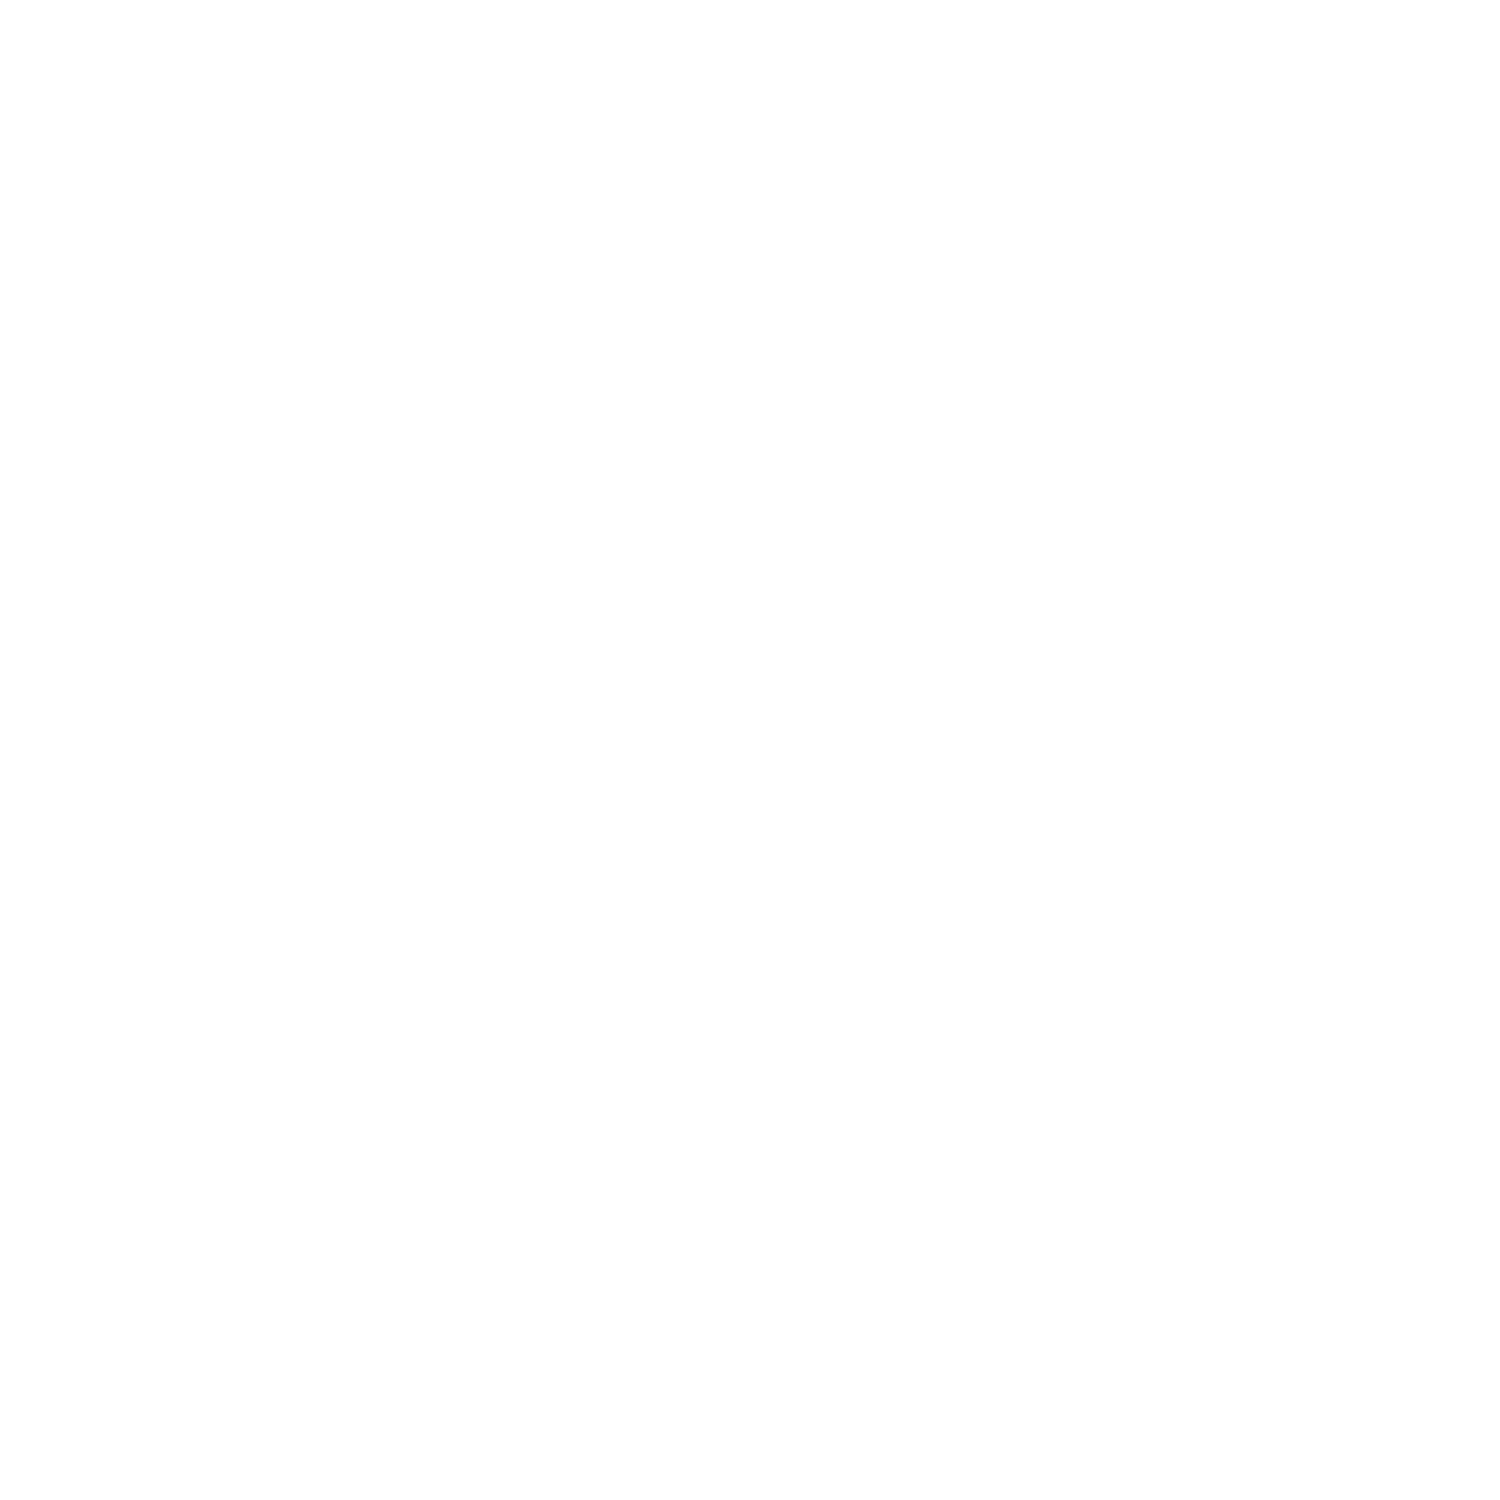 Angela's Artisan Kitchen